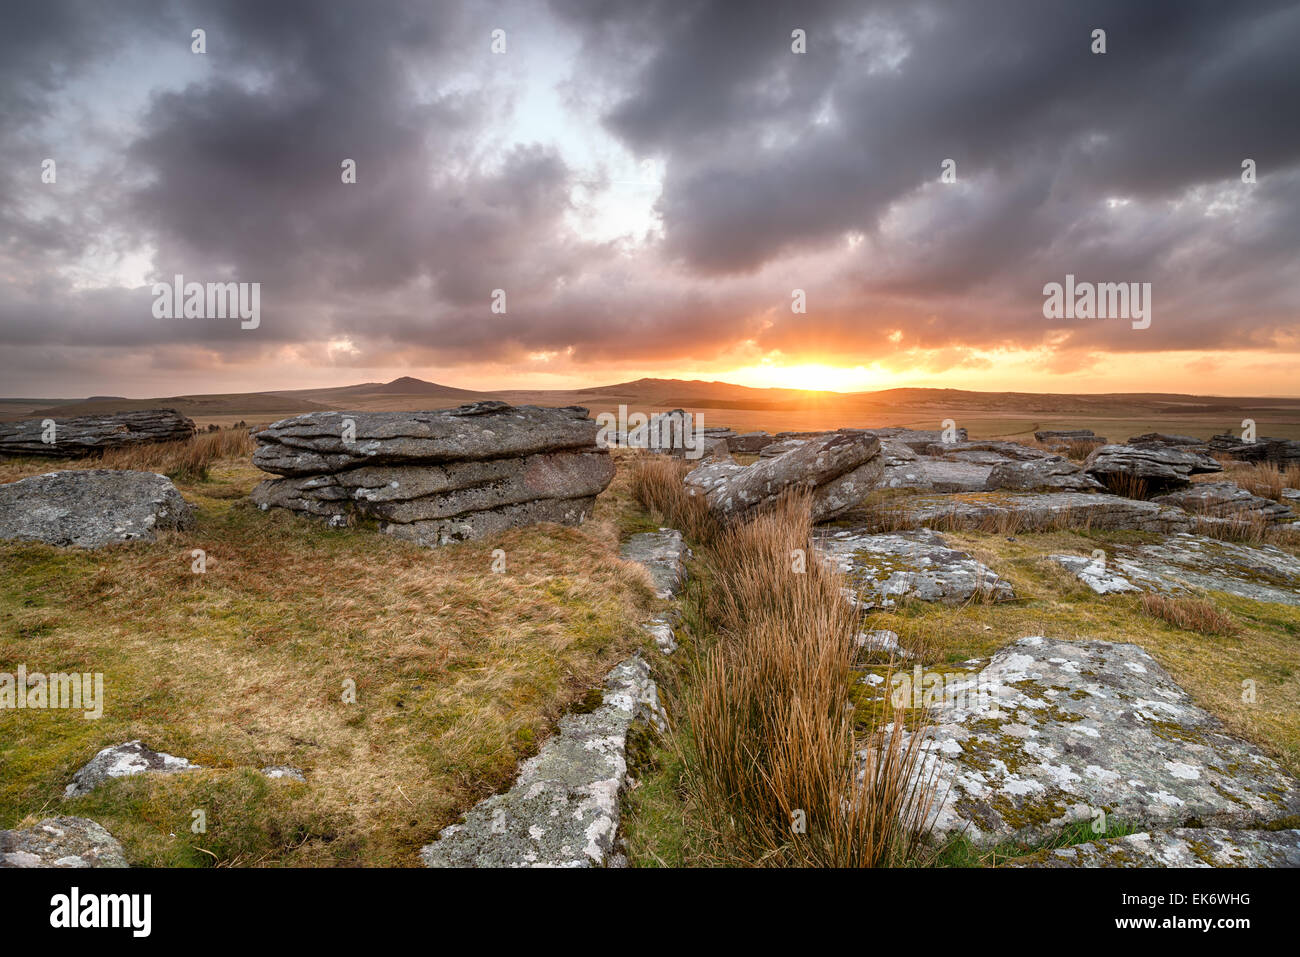 Dramatic sunrise over Bodmin Moor with Roughtor and Brown Willy in the background - Stock Image